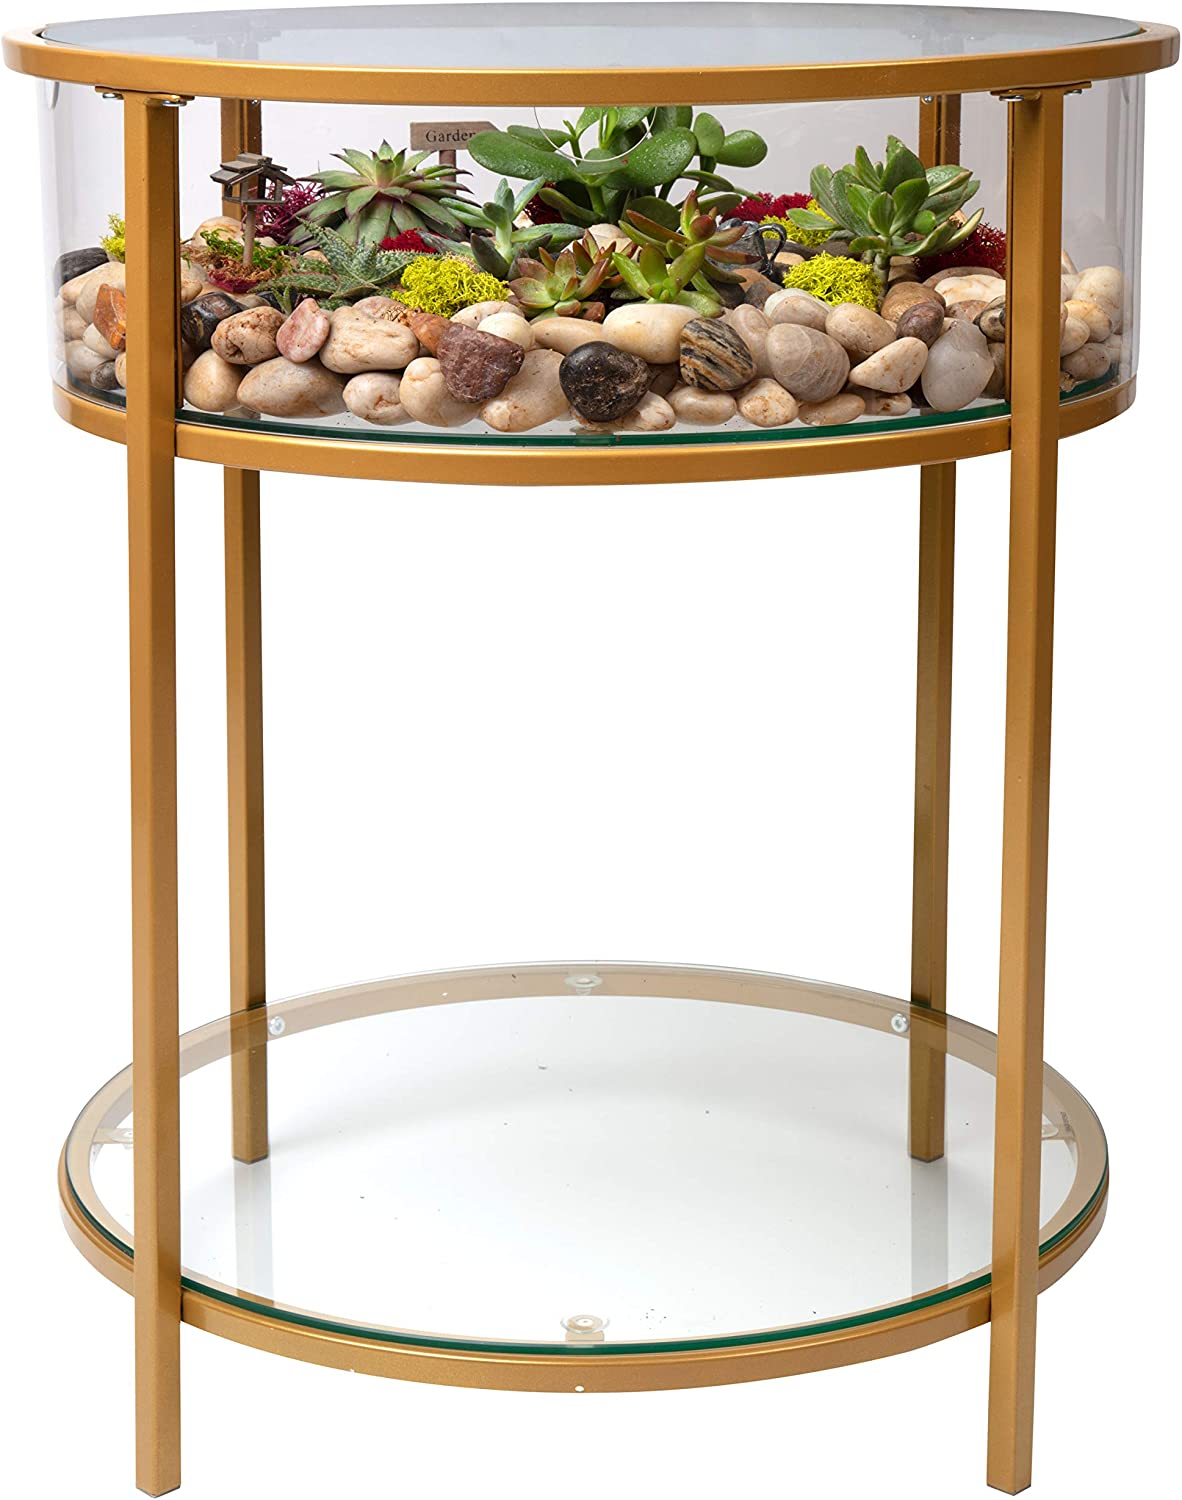 Amazon Com Round Terrarium Display End Table With Reinforced Glass In Gold Iron 20 Diameter 26 5 Height Great Indoor Decor For Any Home Or Office Diy Garden For Fern Moss Succulents Holiday Wedding [ 1500 x 1184 Pixel ]